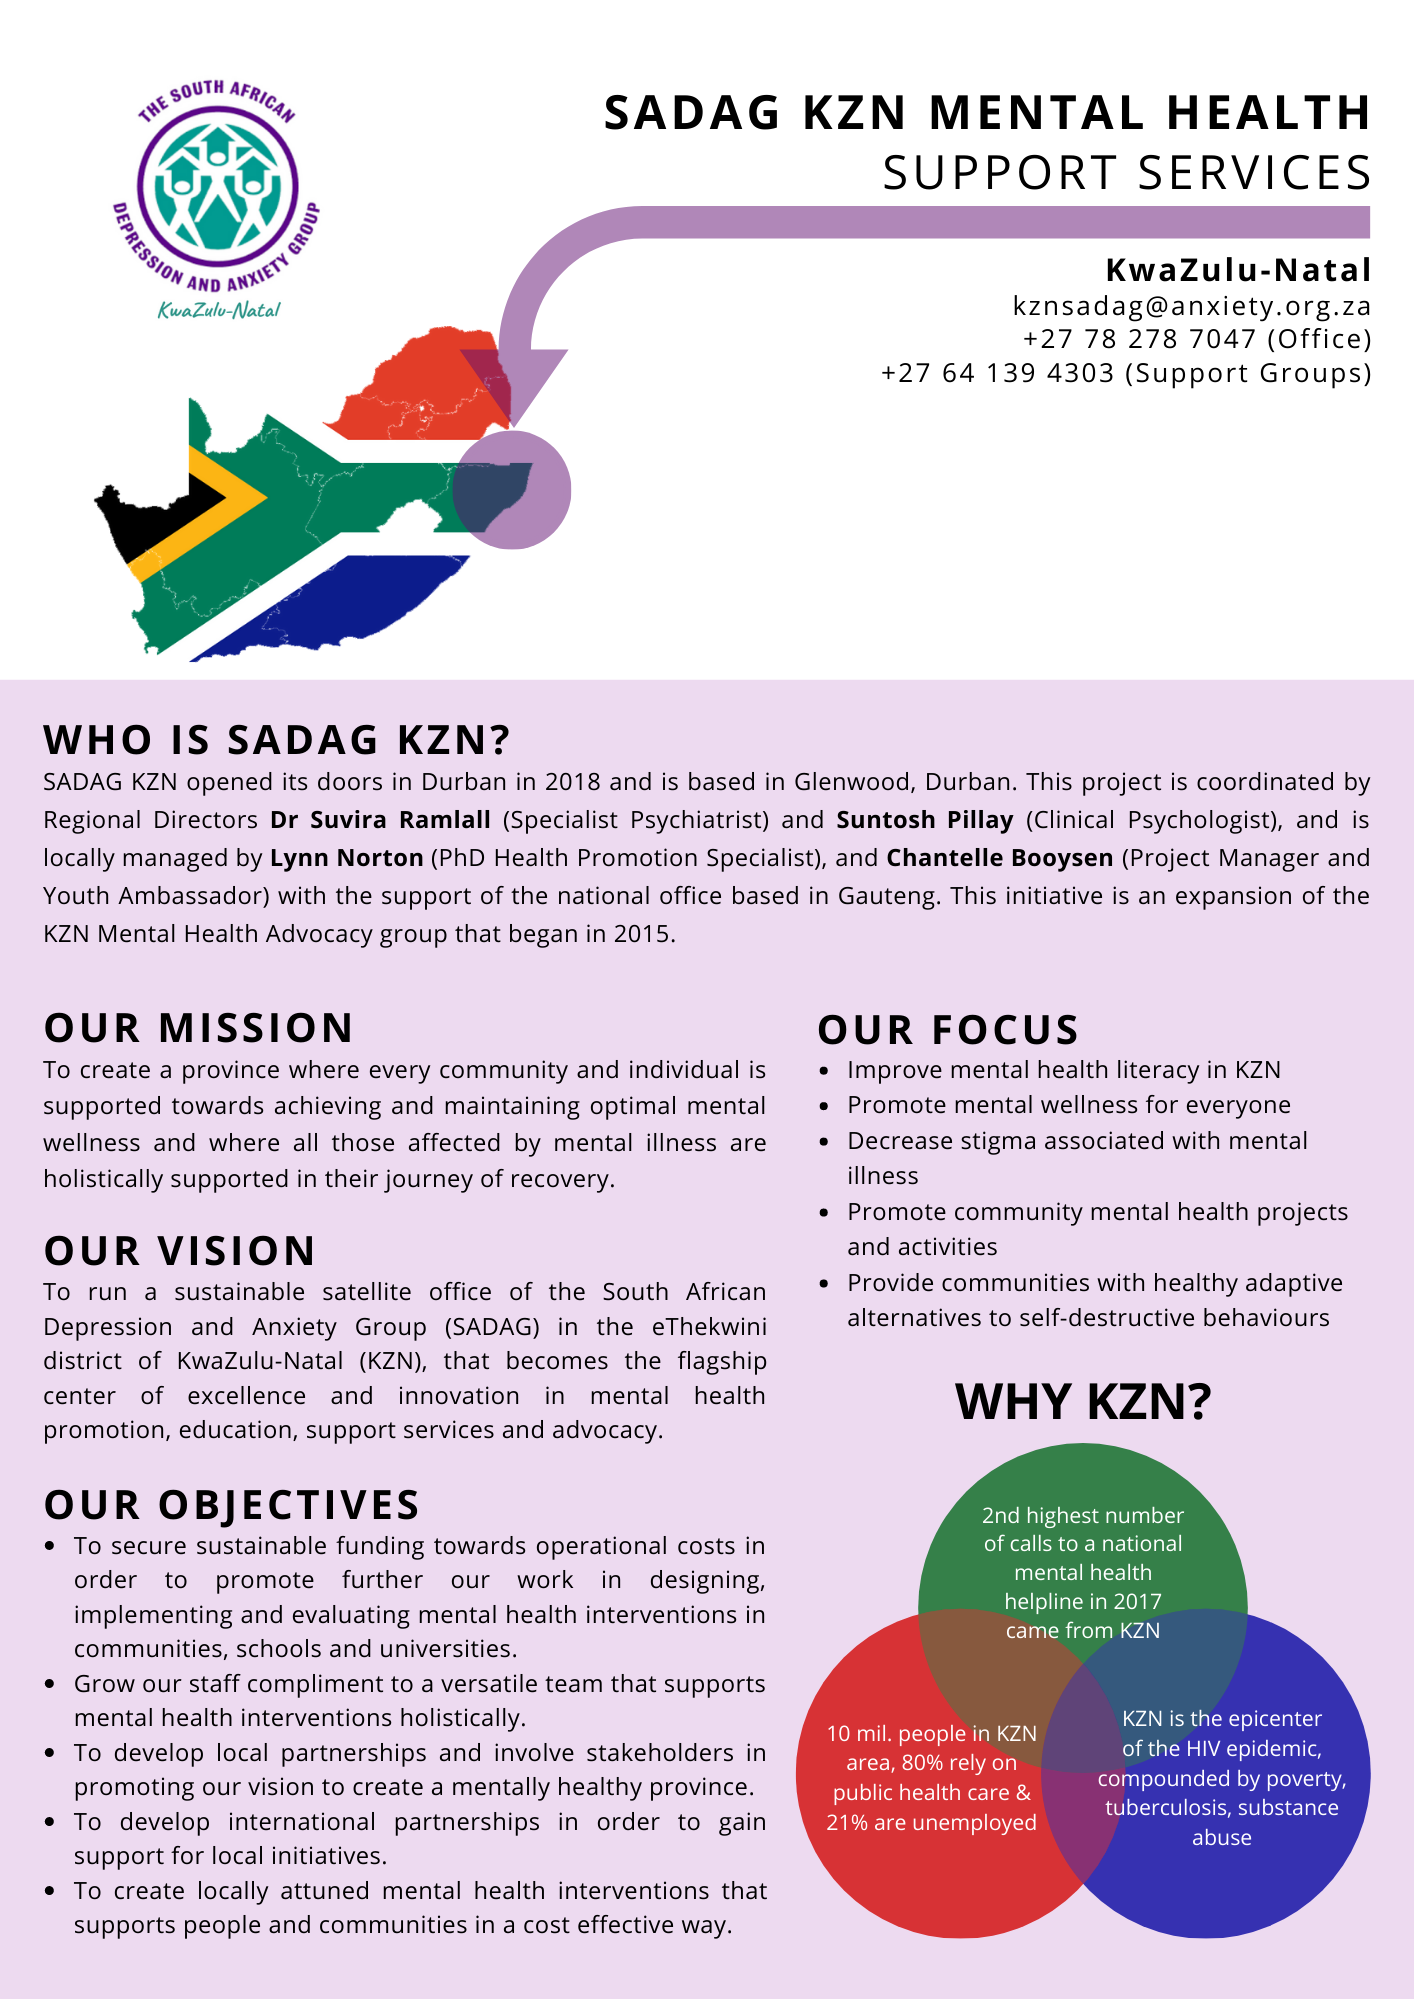 SADAG KZN WEBSITE INFO 2019 FINAL